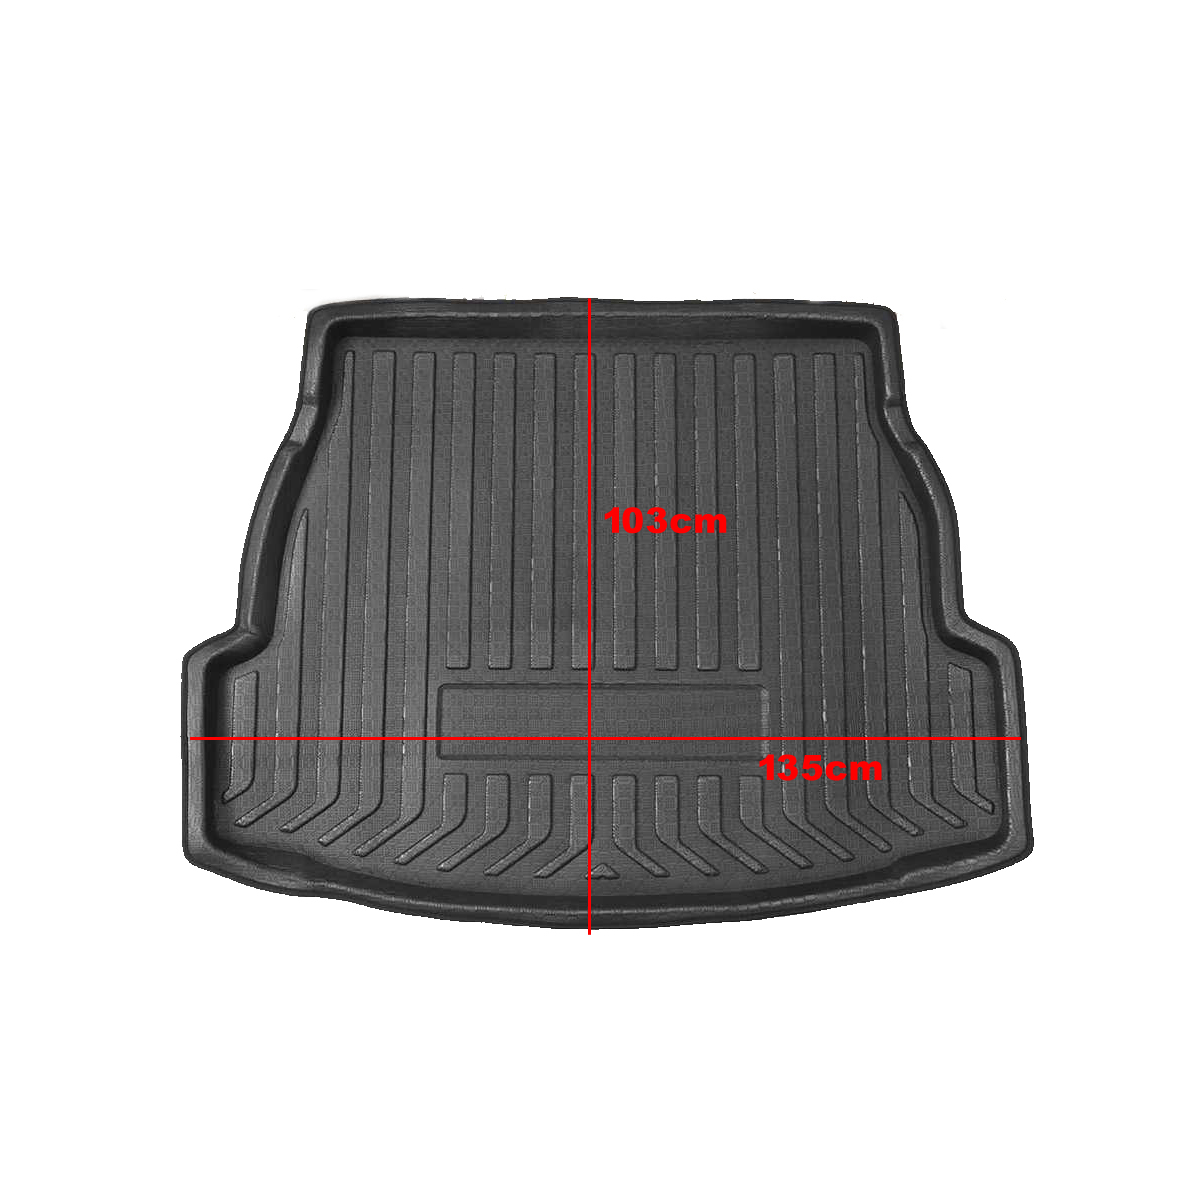 For Toyota RAV4 2019+ Car Rear Protector Replacement Trunk Boot Liner Cargo Mat Luggage Tray Floor Carpet Mud Car Accessories|Floor Mats| |  - title=